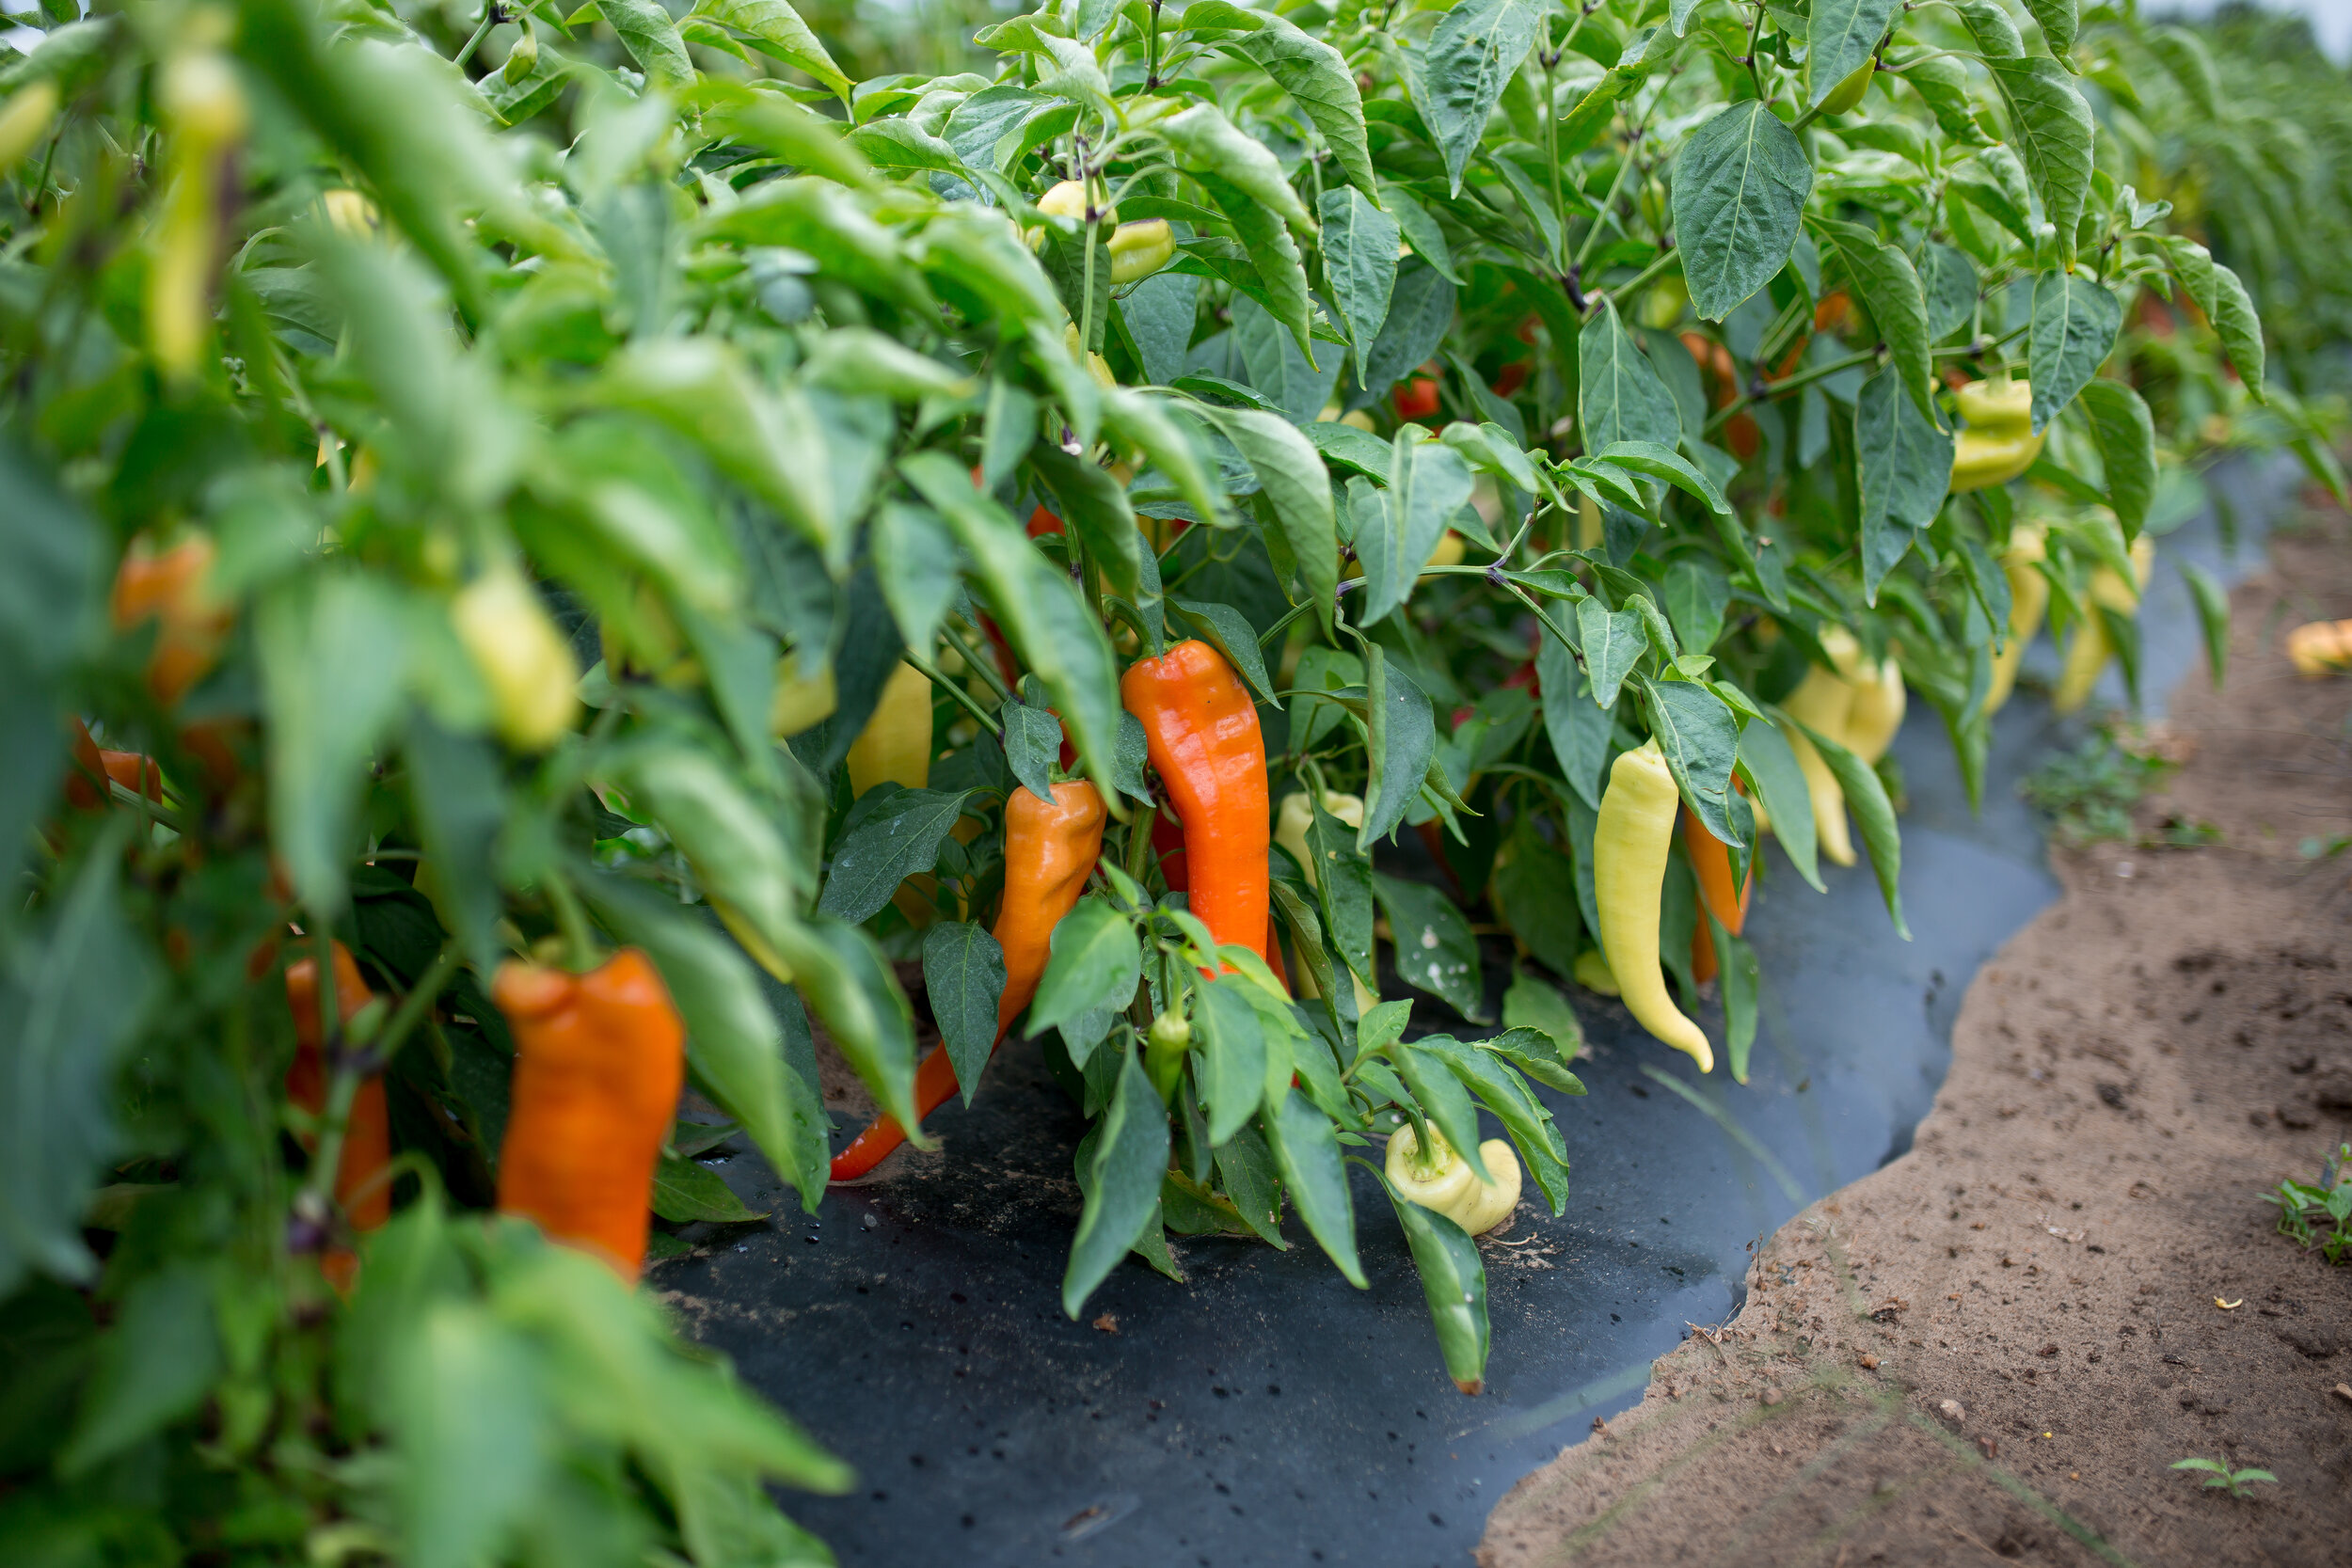 Hungarian hot peppers can range from mild (yellow-green) to hot (deep red). Heat can increase considerably as peppers turn red.